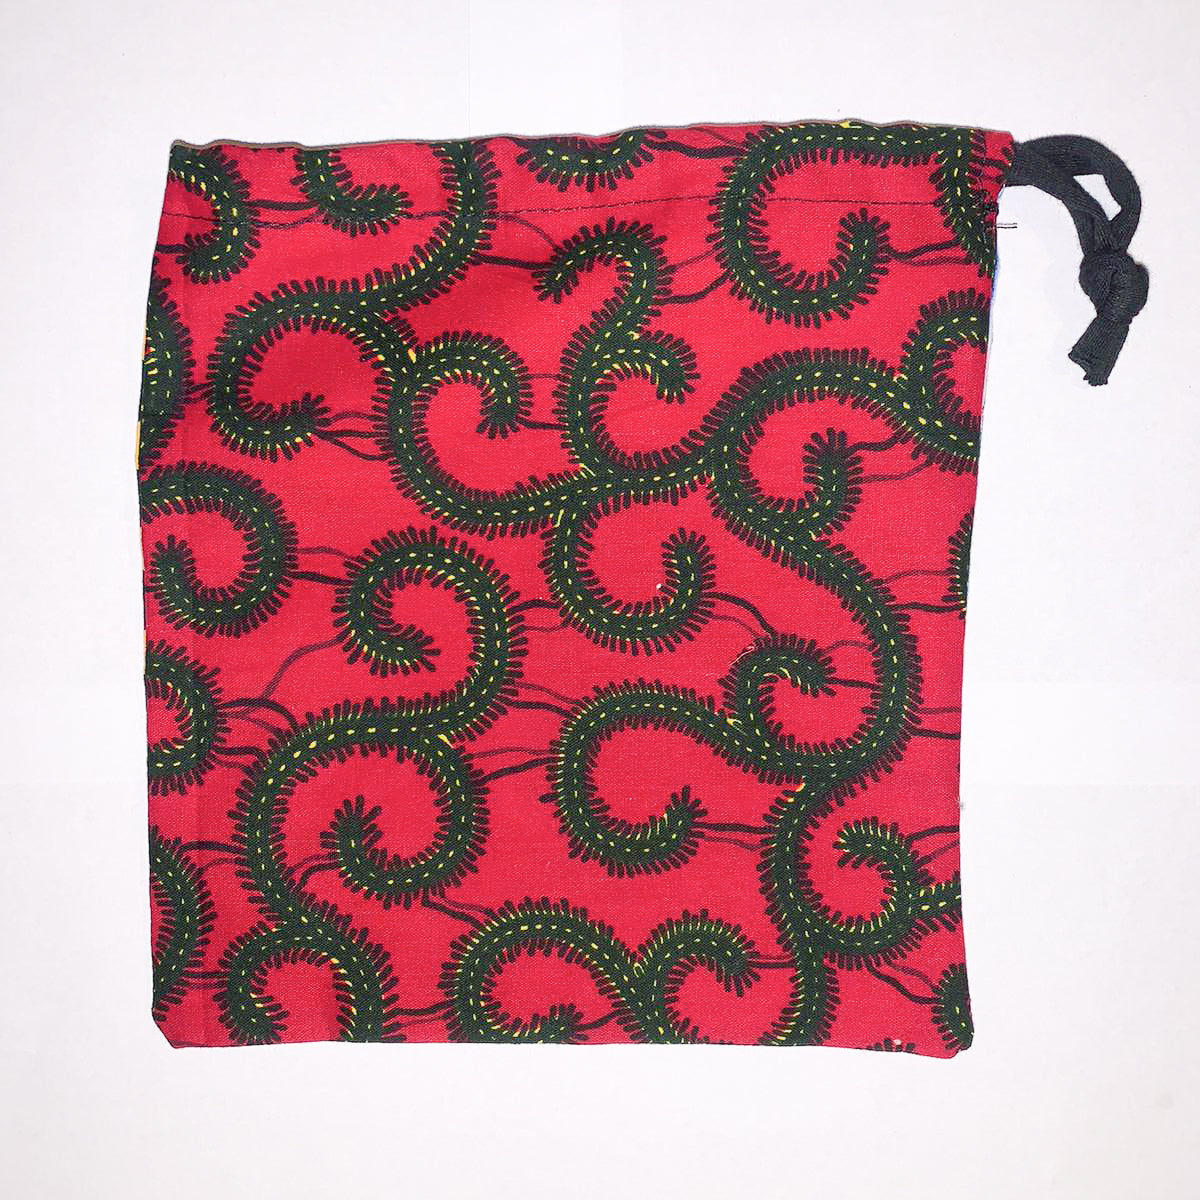 Drawstring bag - zig zag / red swirls